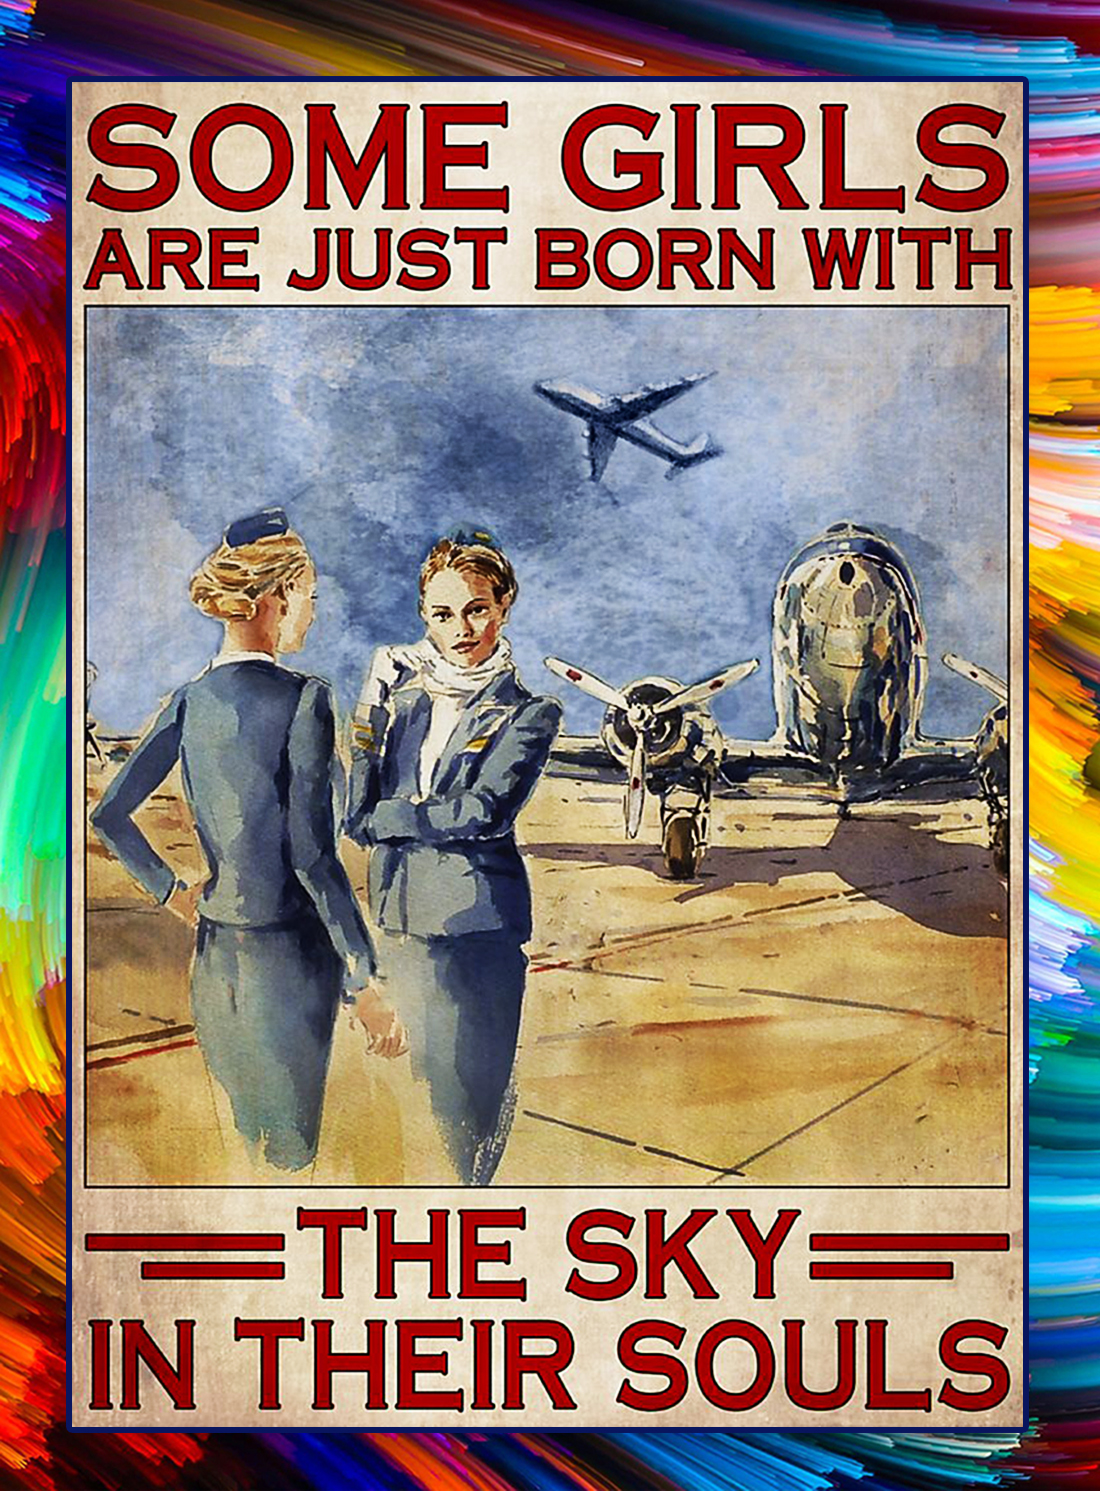 Flight attendant Some girls are just born with the sky in their souls poster